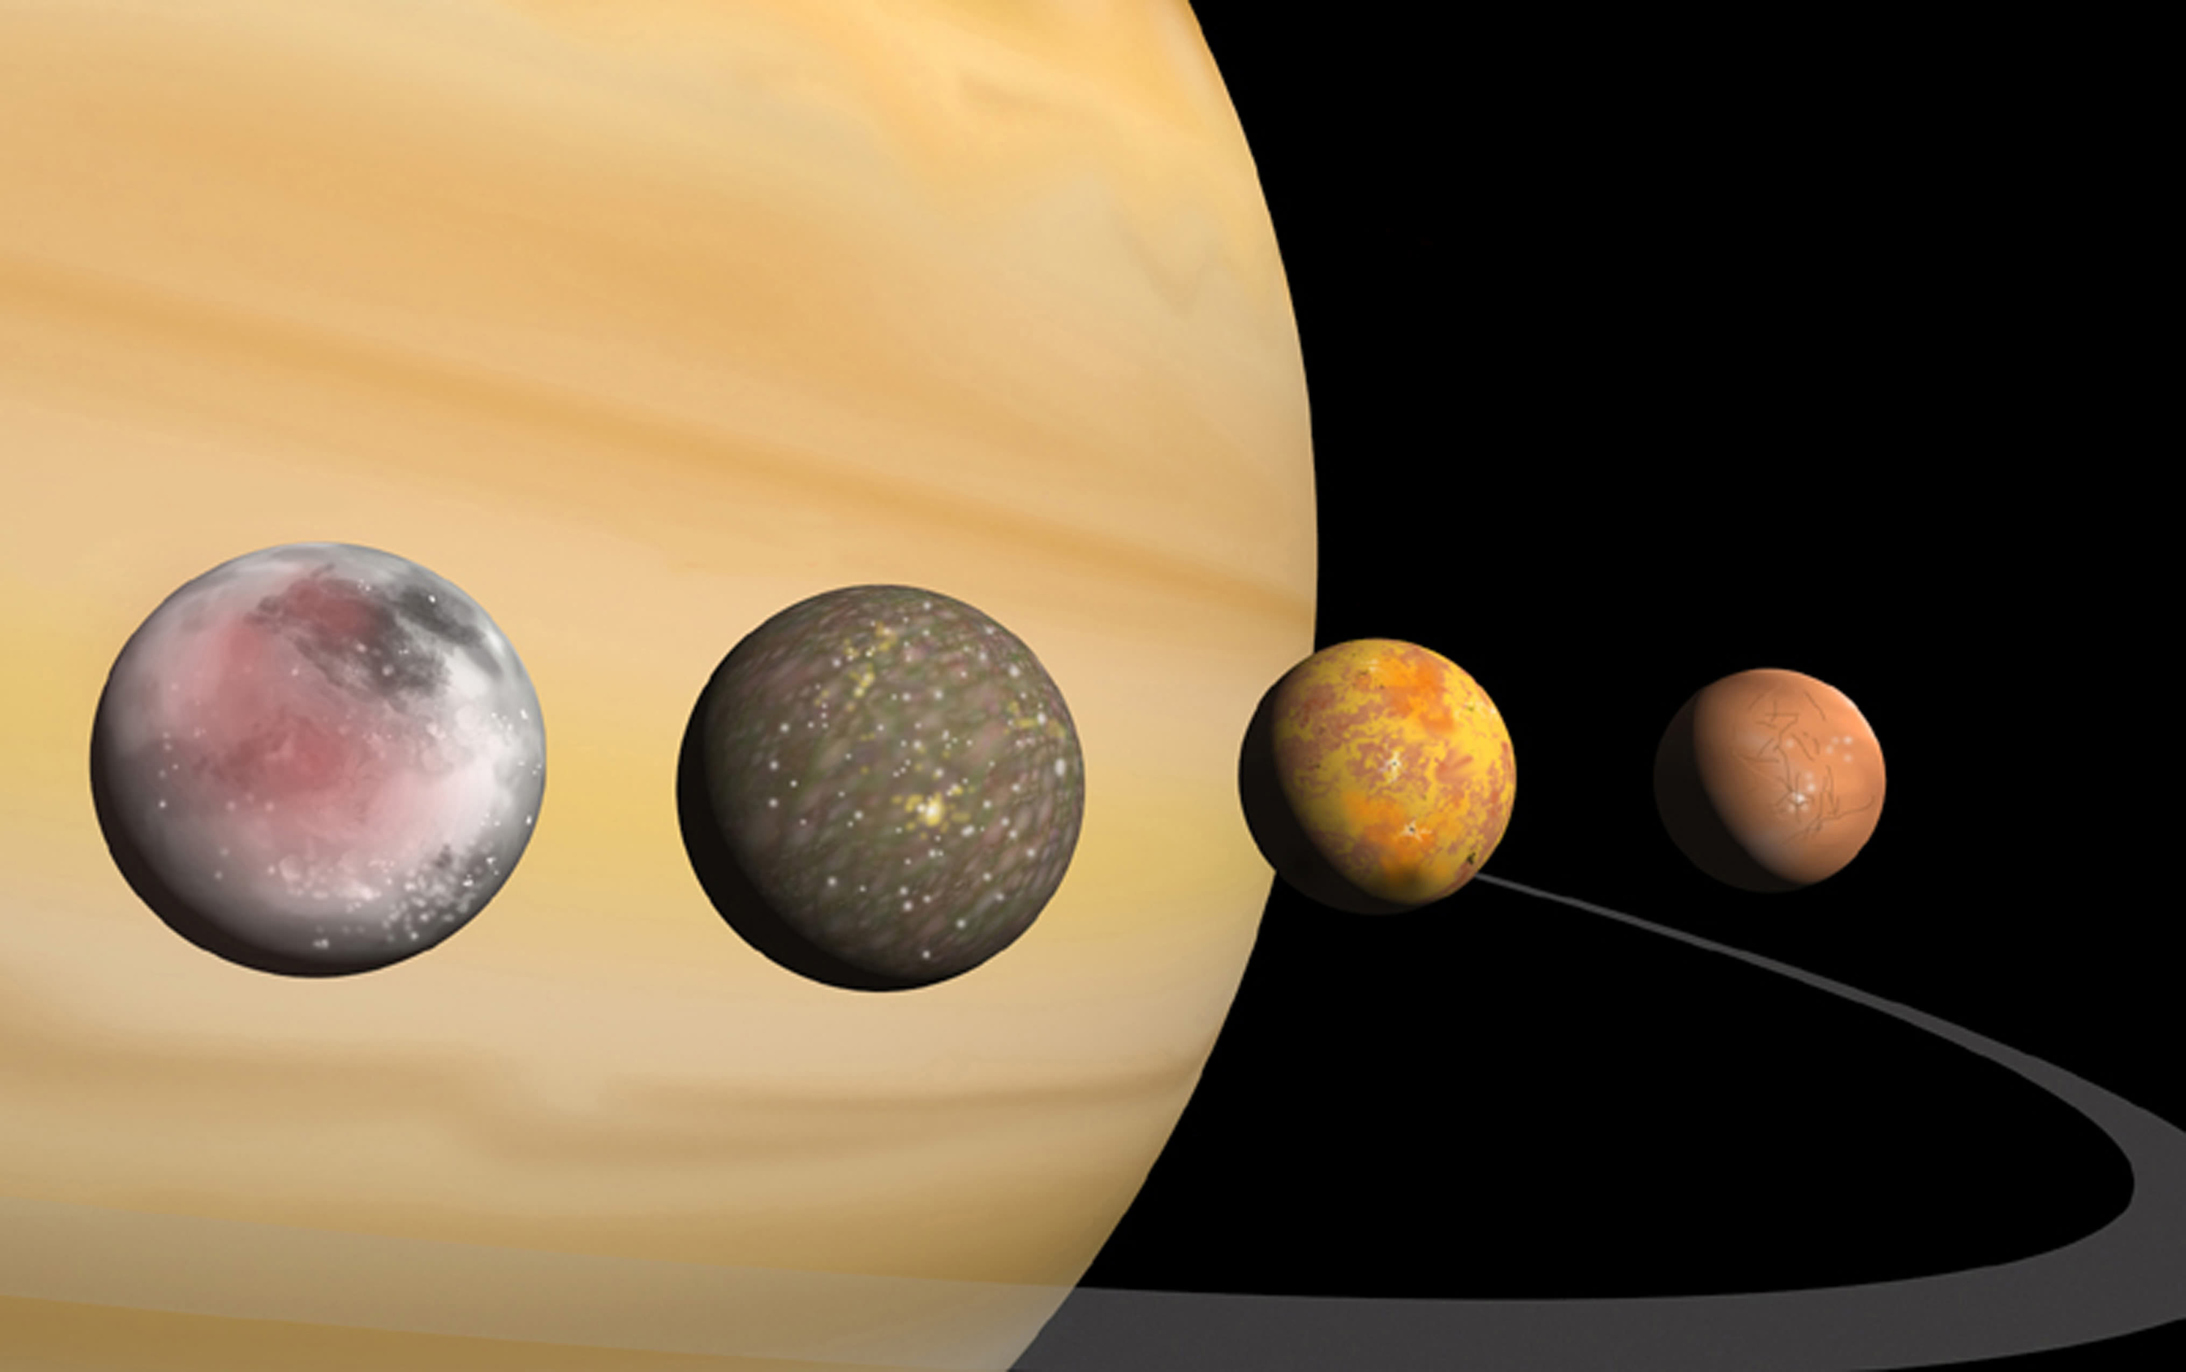 Jupiters four largest moons (left to right): Ganymede, Callisto, Io and Europa.